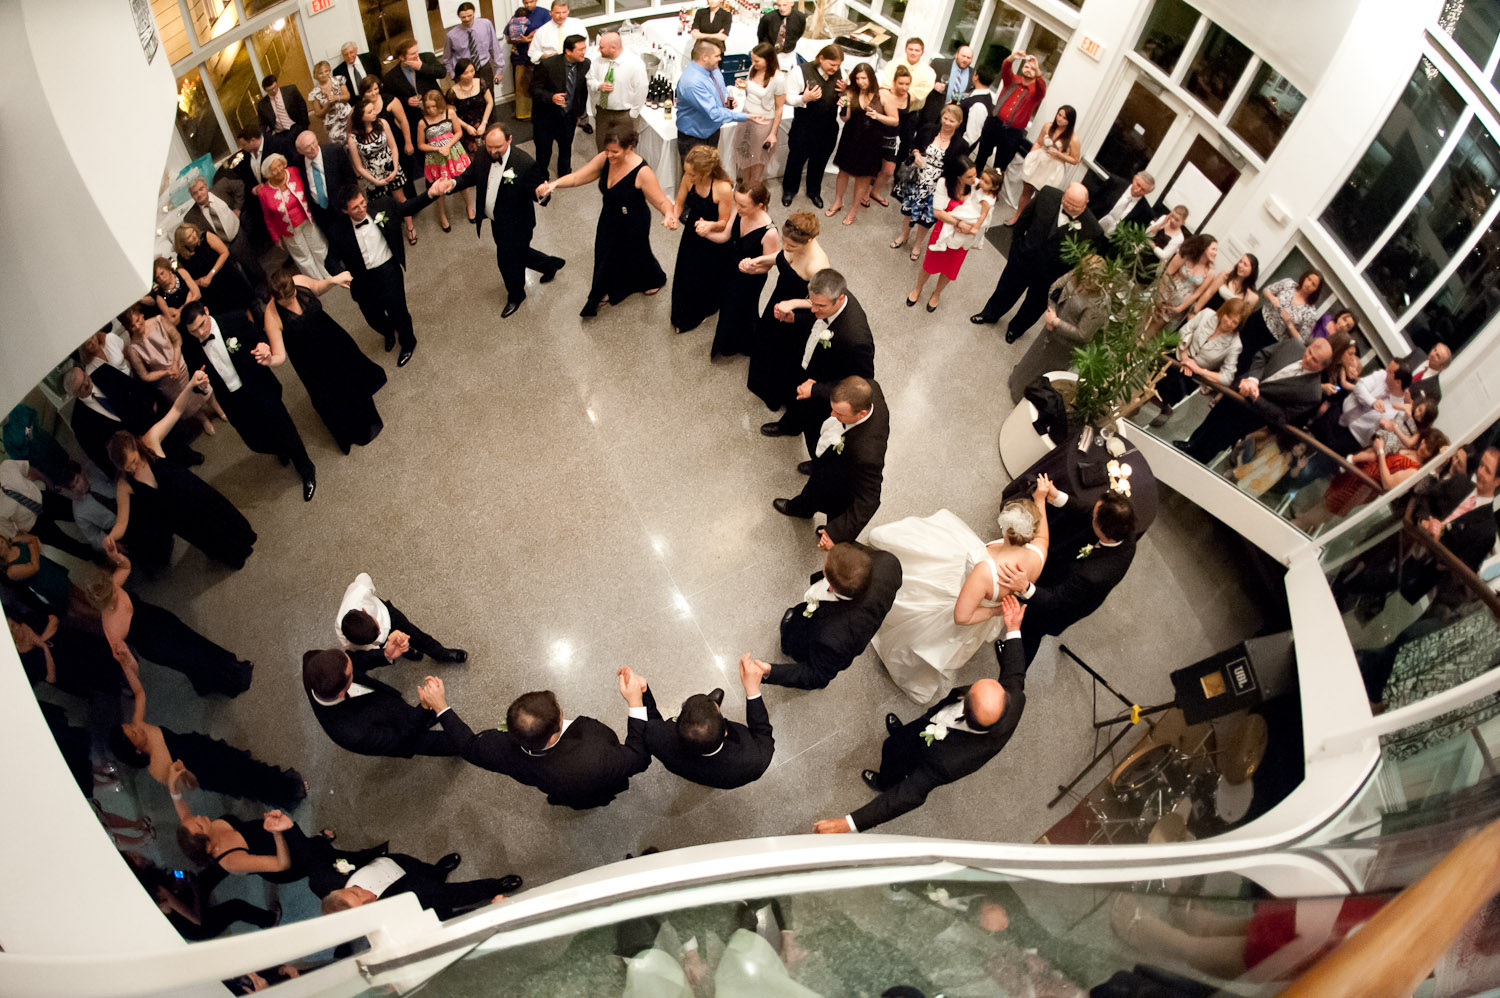 Birdseye view of the pavilion with a large group of wedding guests dancing in a circle formation